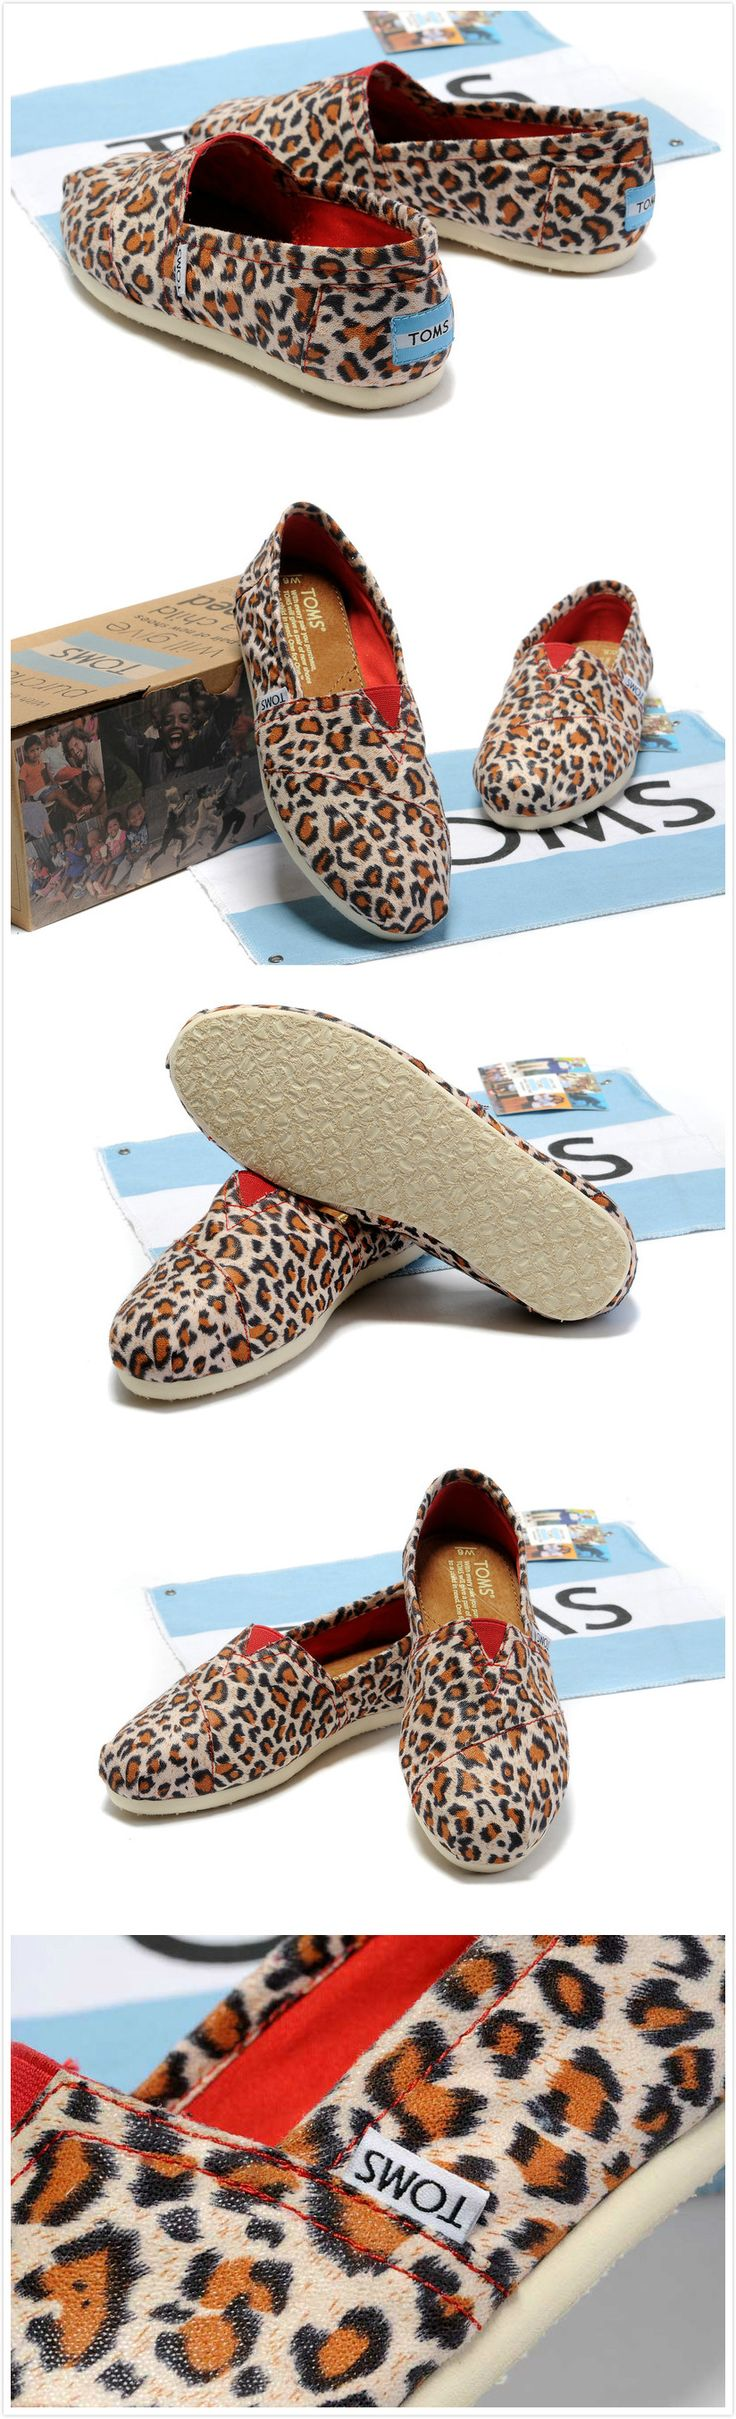 Toms Classic Shoes Canvas Women Leopard for $17.59. Just so you know, I am on board! Pin It To Win It: docs.google.com/...